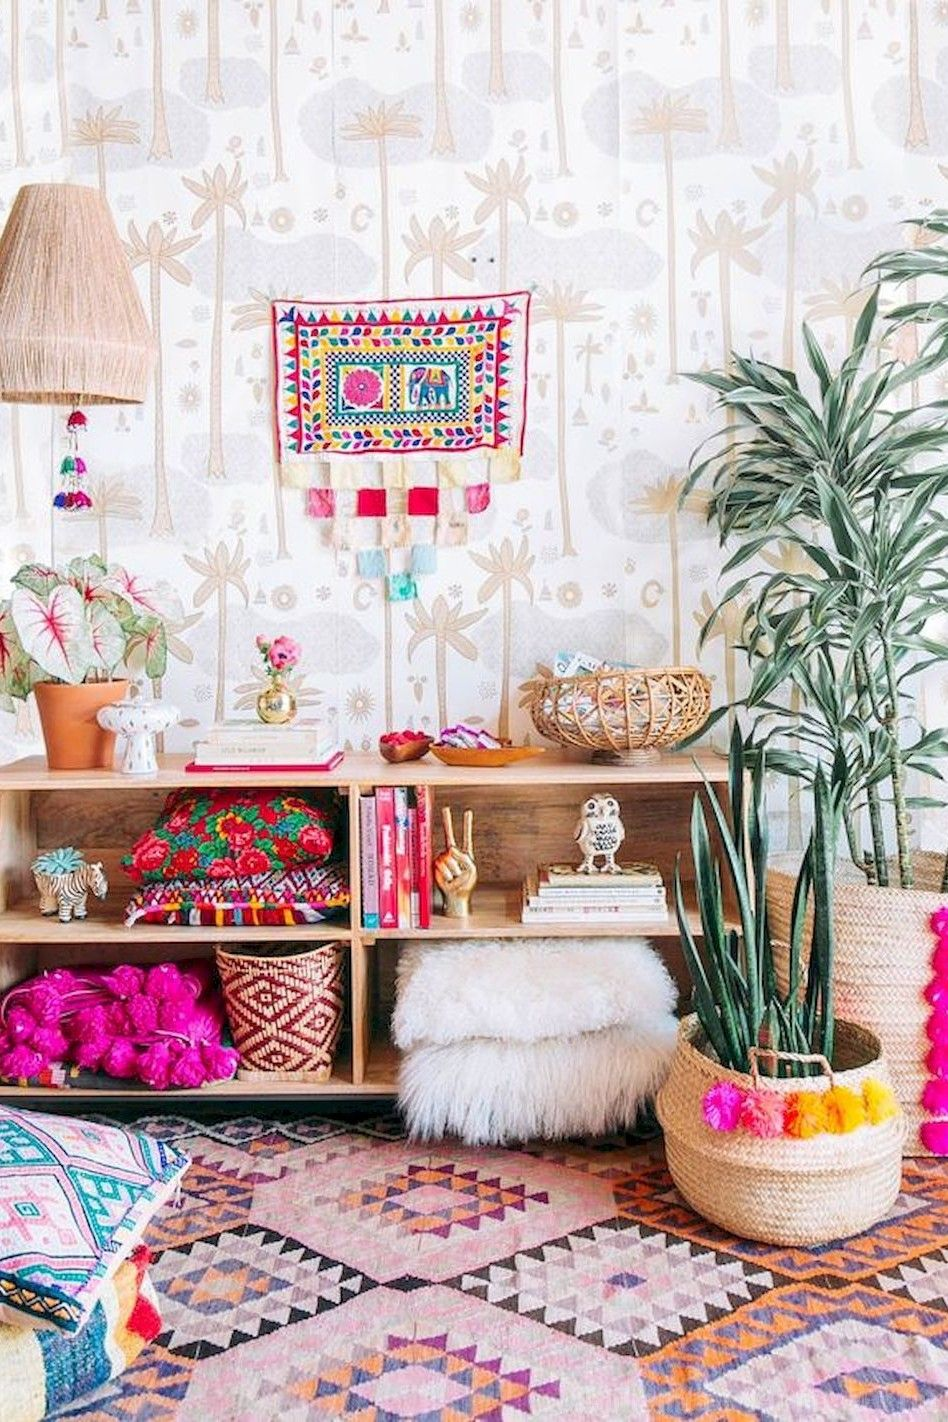 10 Undeniable Facts About Bohemian Home Decor Oct 2020